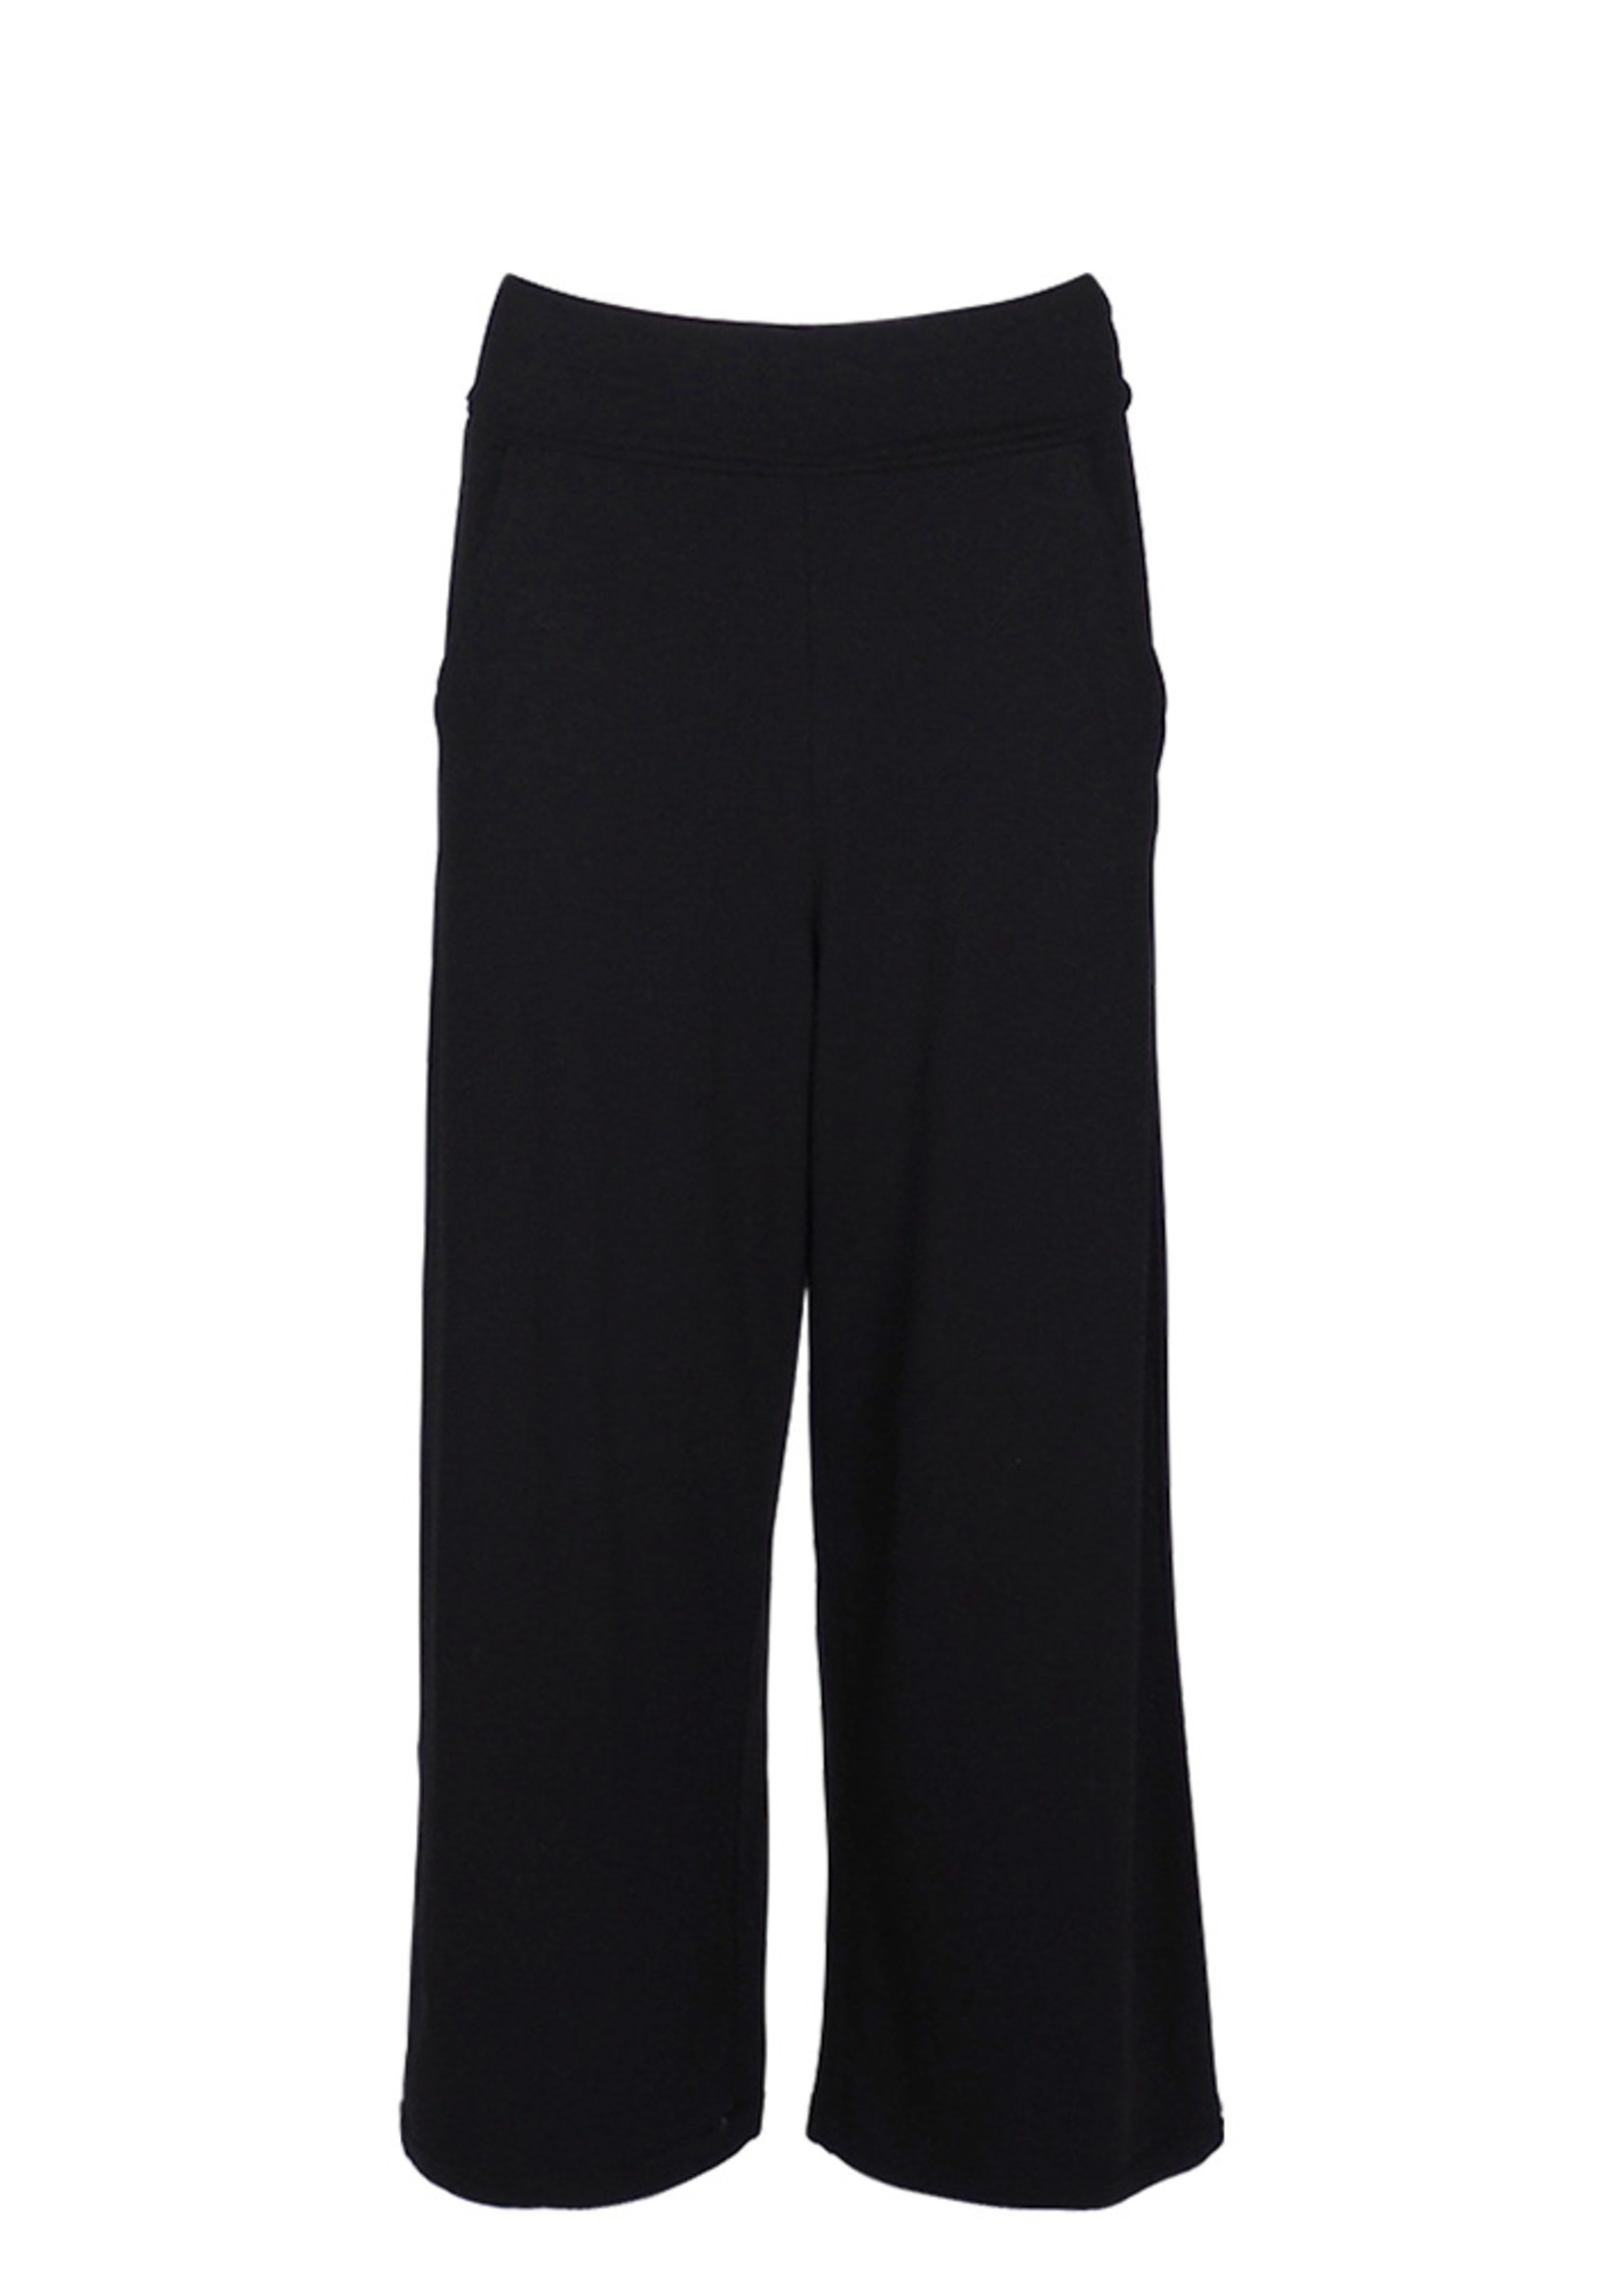 Mansted Mansted Knit Wide Leg Pull-on Pant